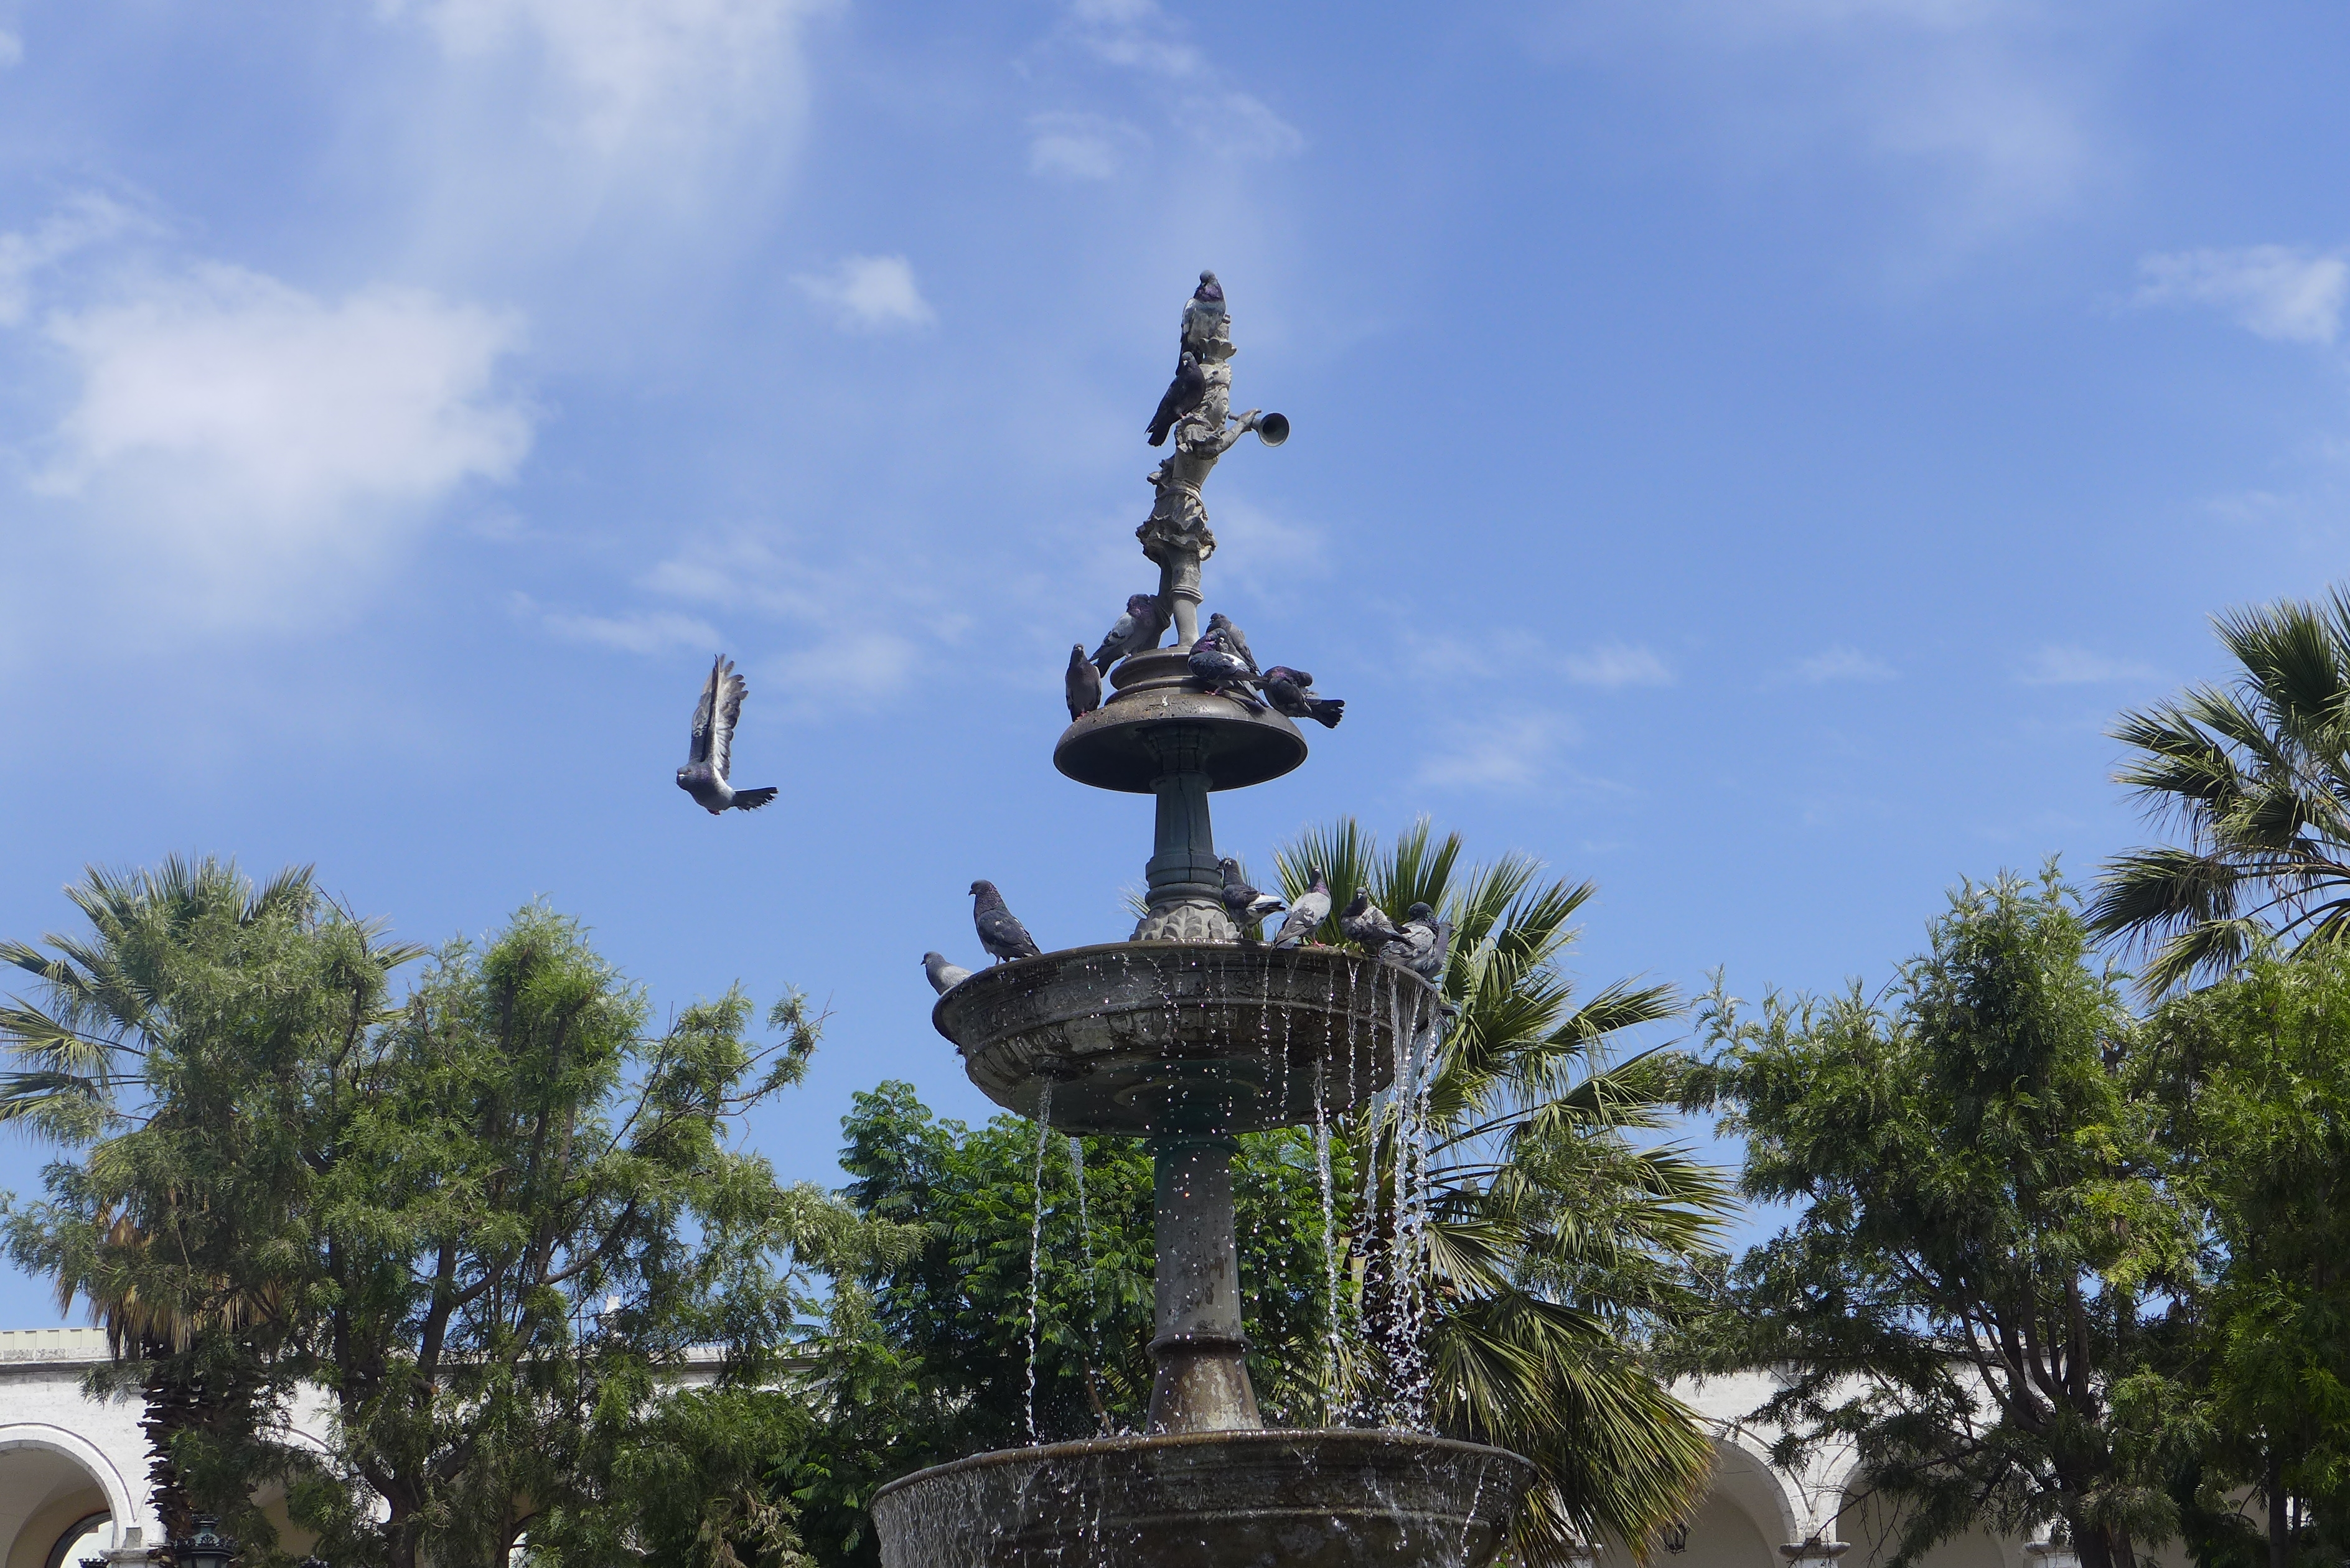 Bubbling fountain and a pigeon in flight